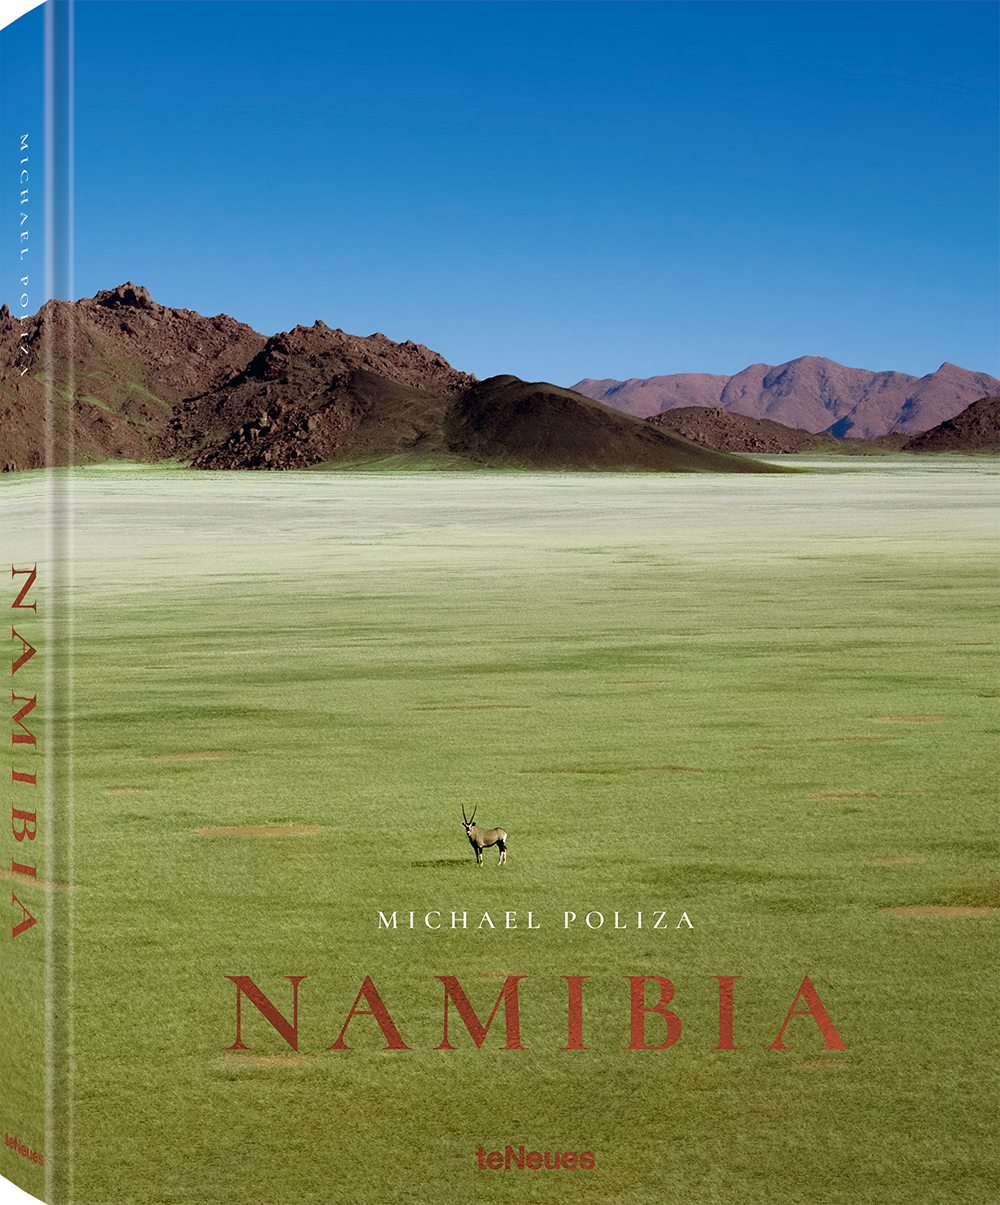 © Namibia by Michael Poliza, published by teNeues, € 80,  www.teneues.com ,  The grassland of the NamibRand Nature Reserve stretches like a green sea against the hills of the Nubib mountain range,  Photo © 2018 Michael Poliza. All rights reserved.  www.michaelpoliza.com